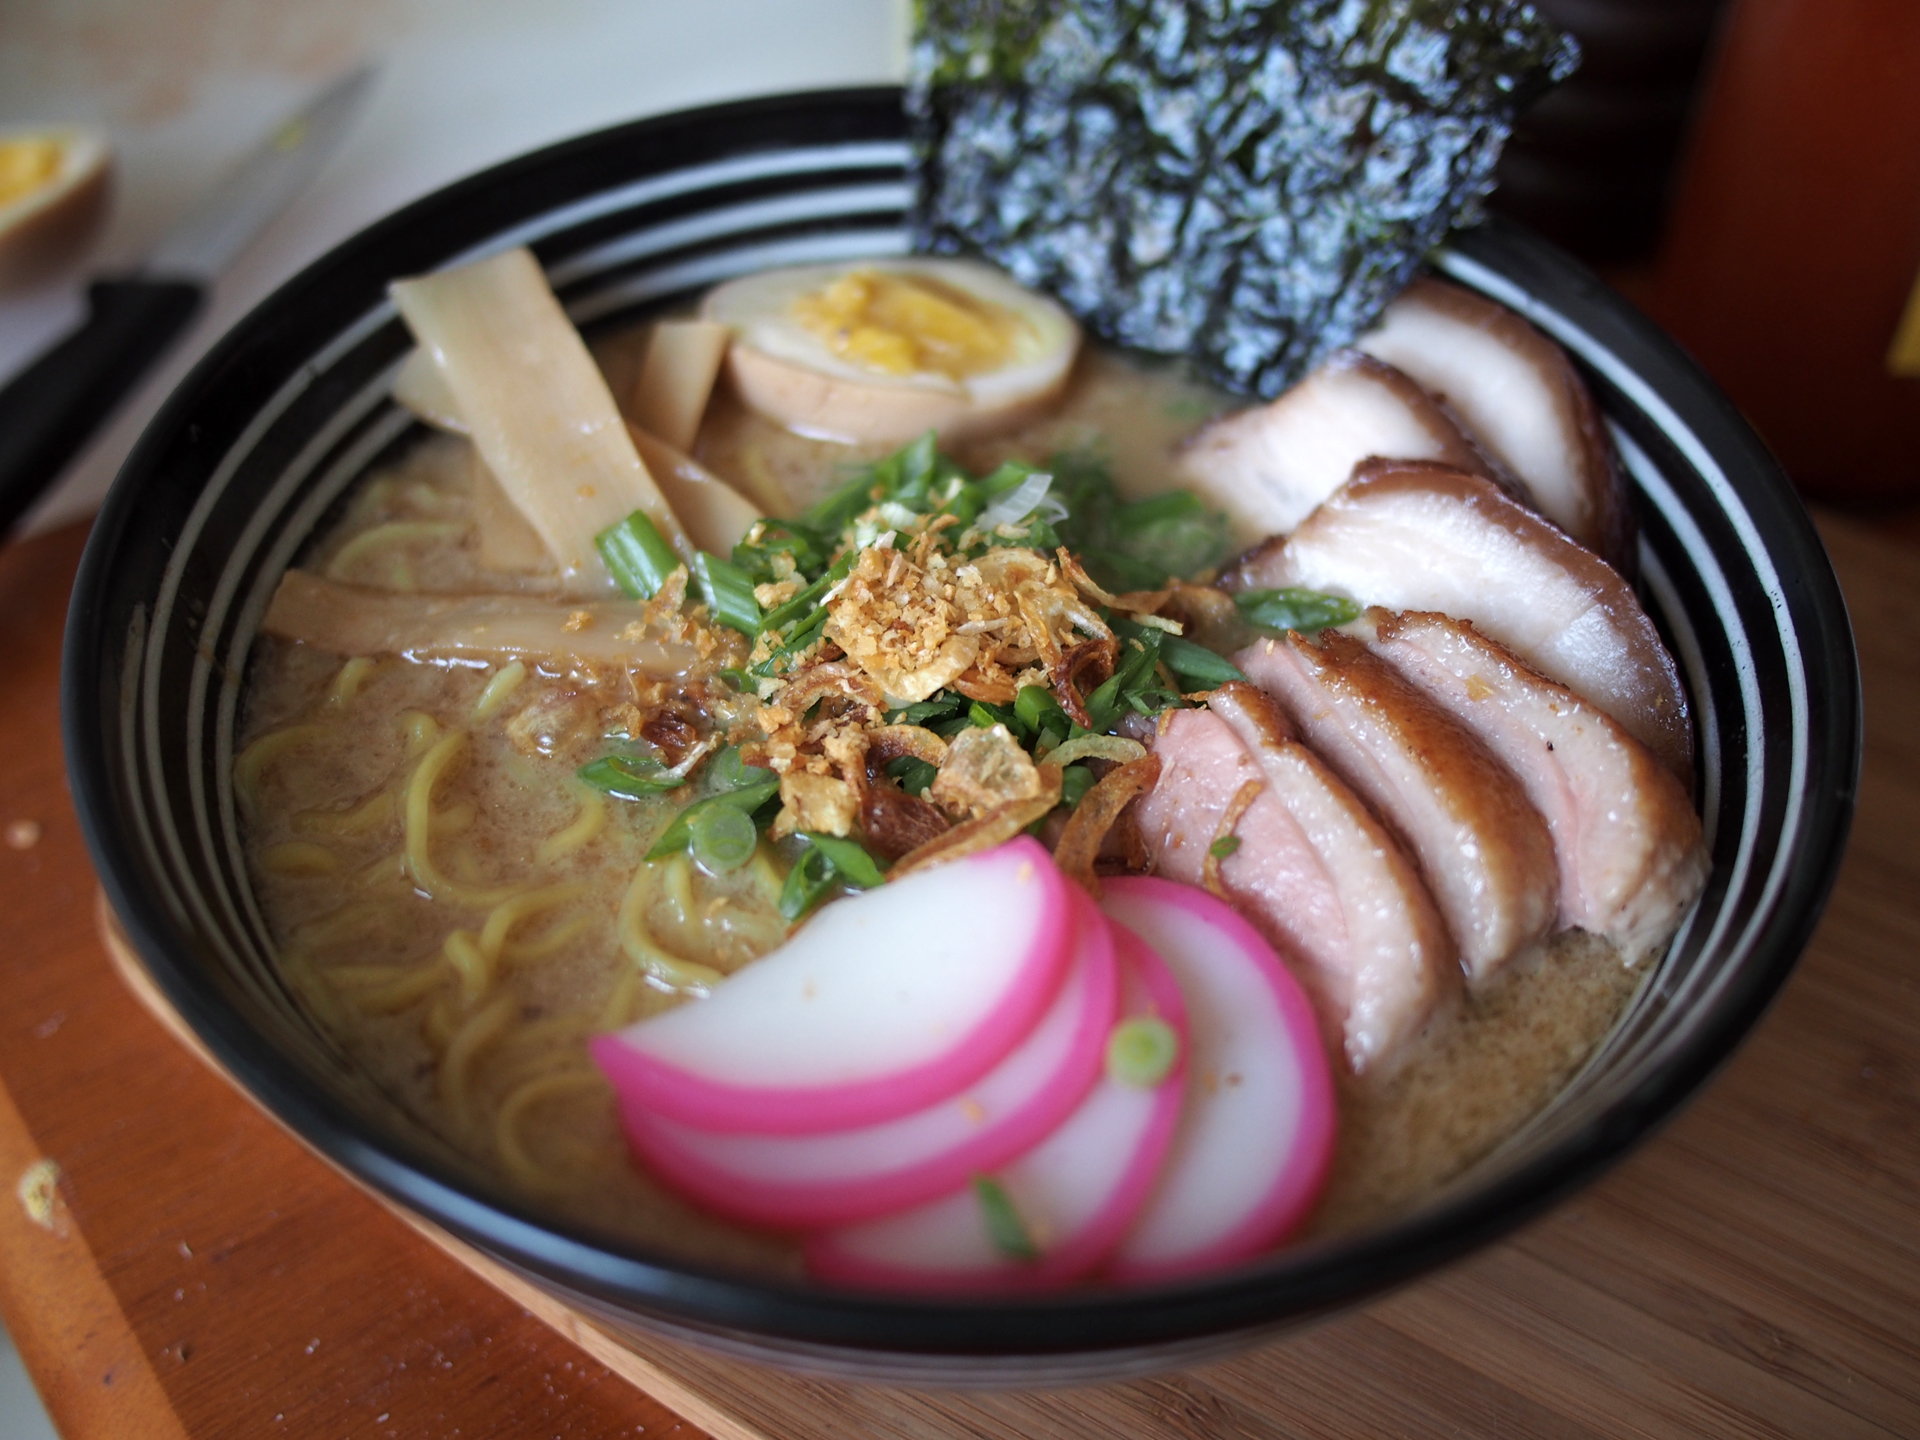 Tonkotsu/Duck ramen with sous vide pork belly chashu, sous vide duck breast, fish cake, and seasoned medium-boiled egg topped with menma, green onion, fried shallot, fried garlic, and nori strips.